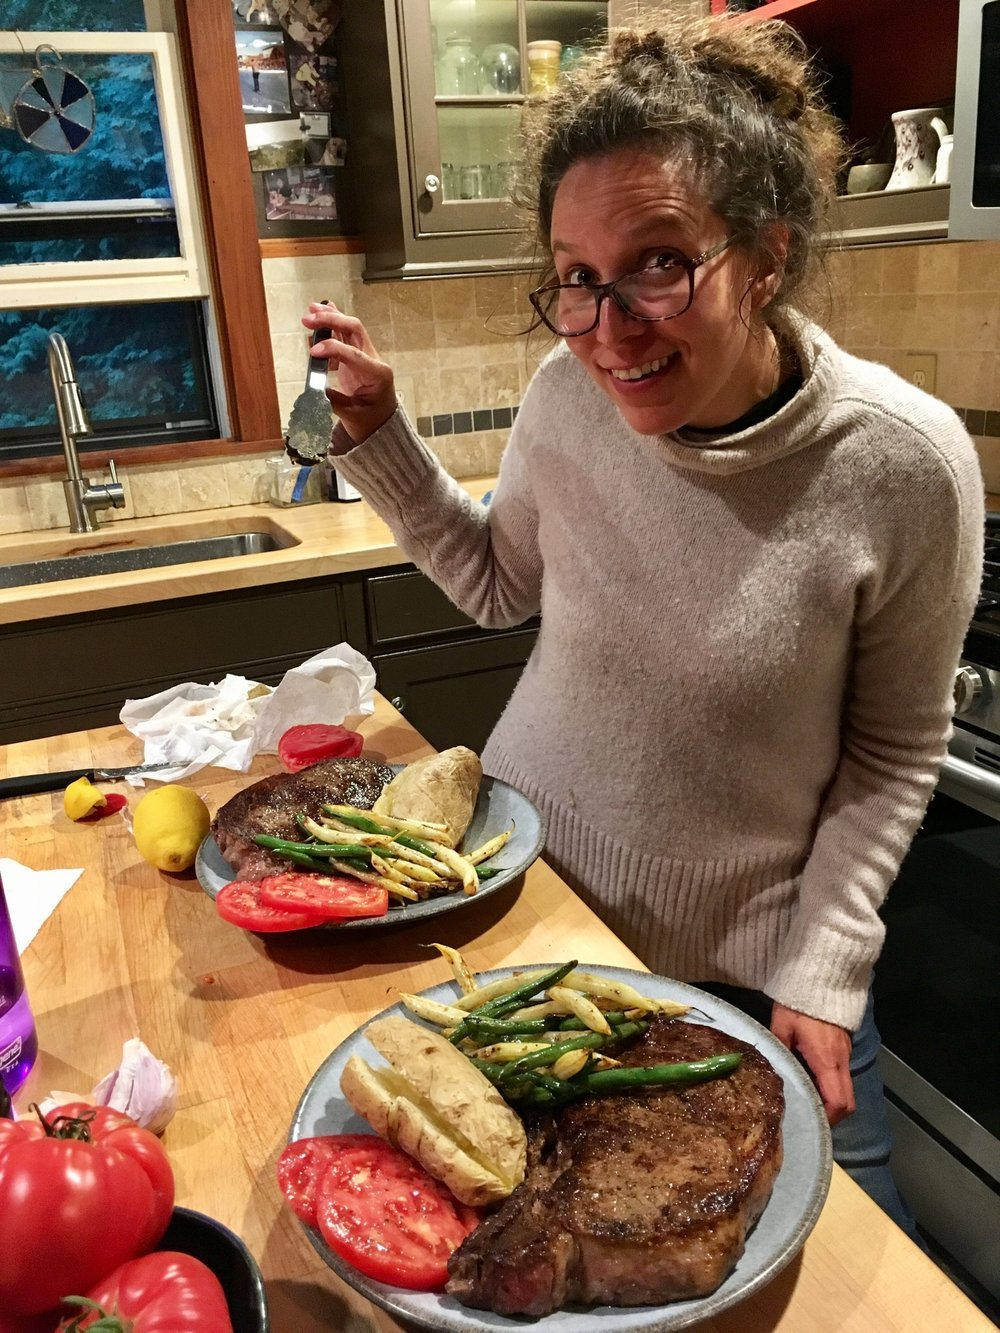 And lastly, here I am in a friend's kitchen making a gigantic meal after living on the sailing vessel Bernard for five months. Photo by Todd Everett.